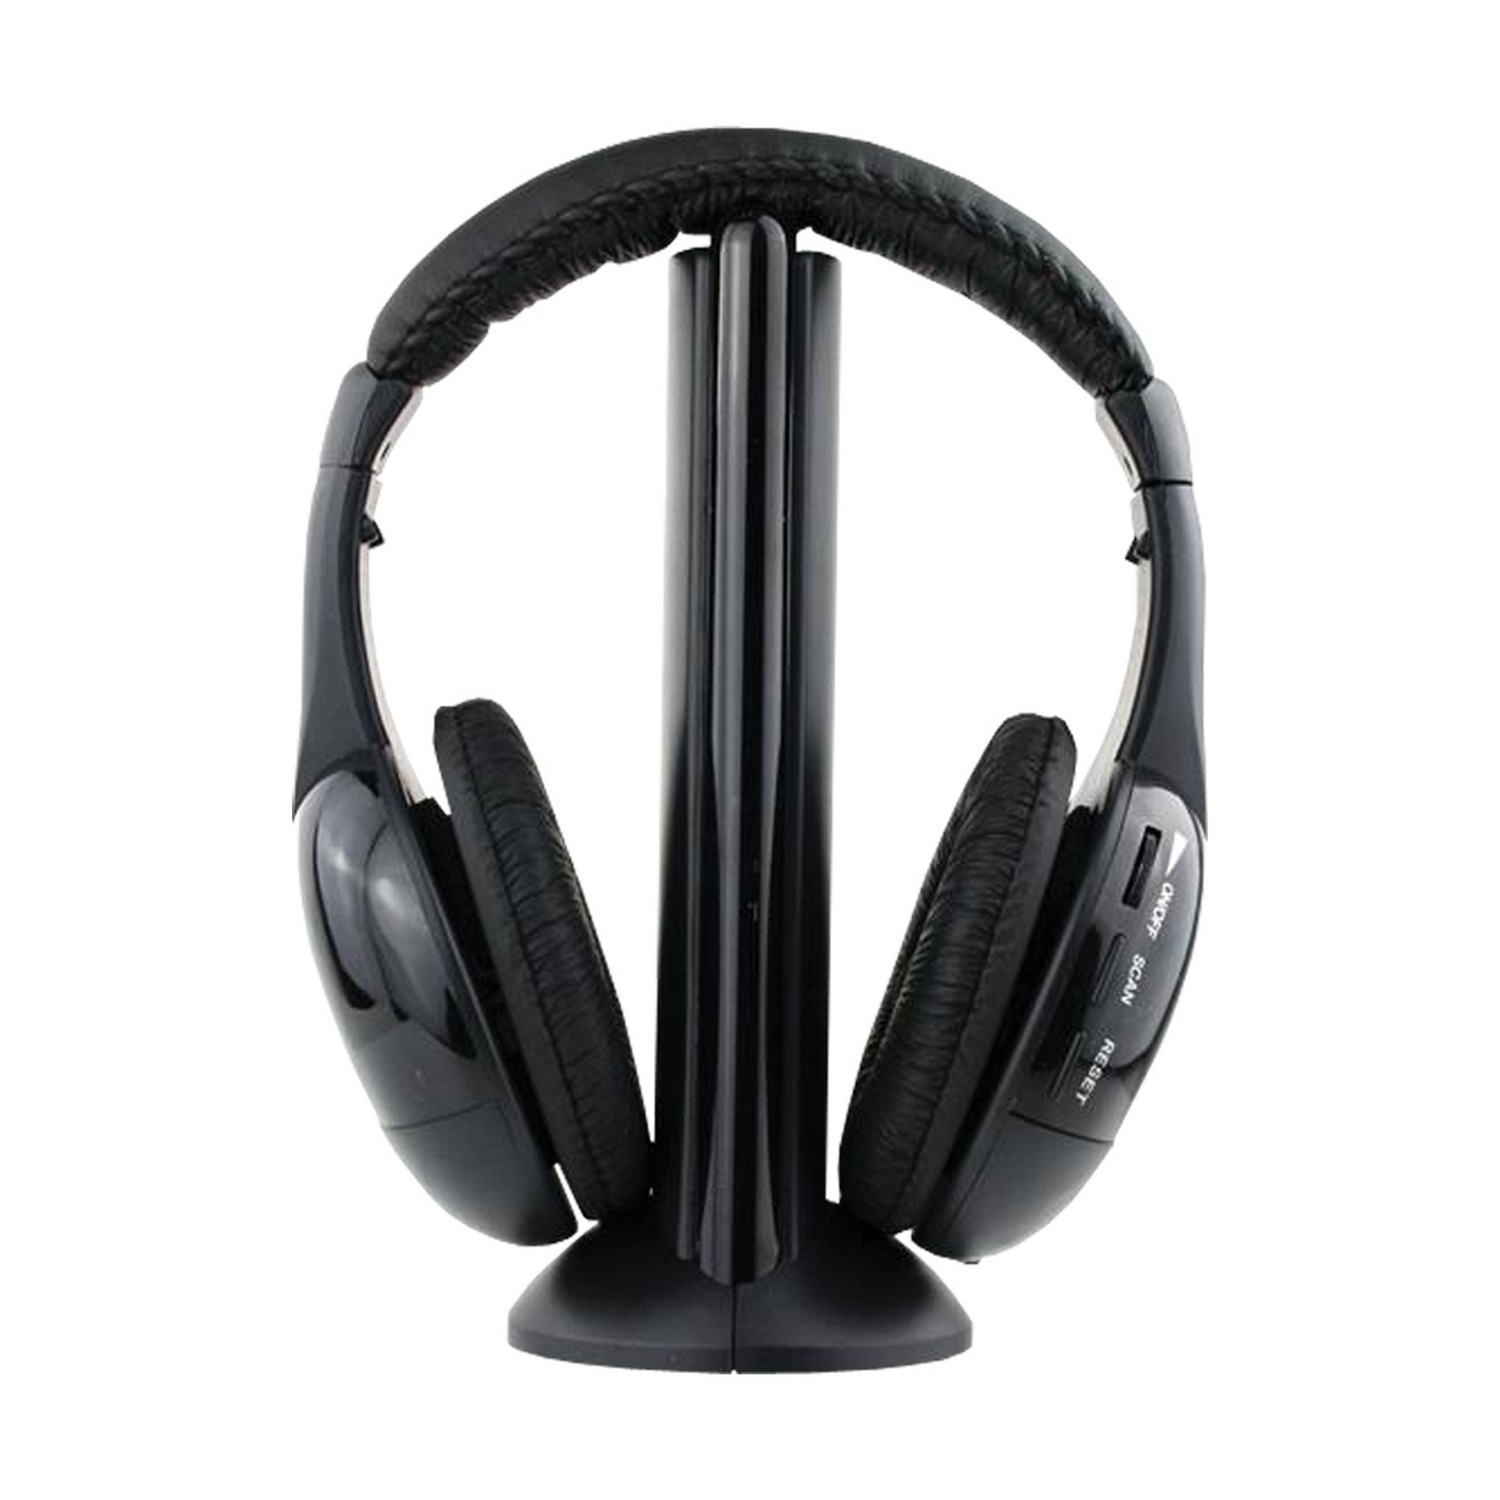 5 in 1 wireless headphones with microphone fm radio over the ear earphone black ebay. Black Bedroom Furniture Sets. Home Design Ideas